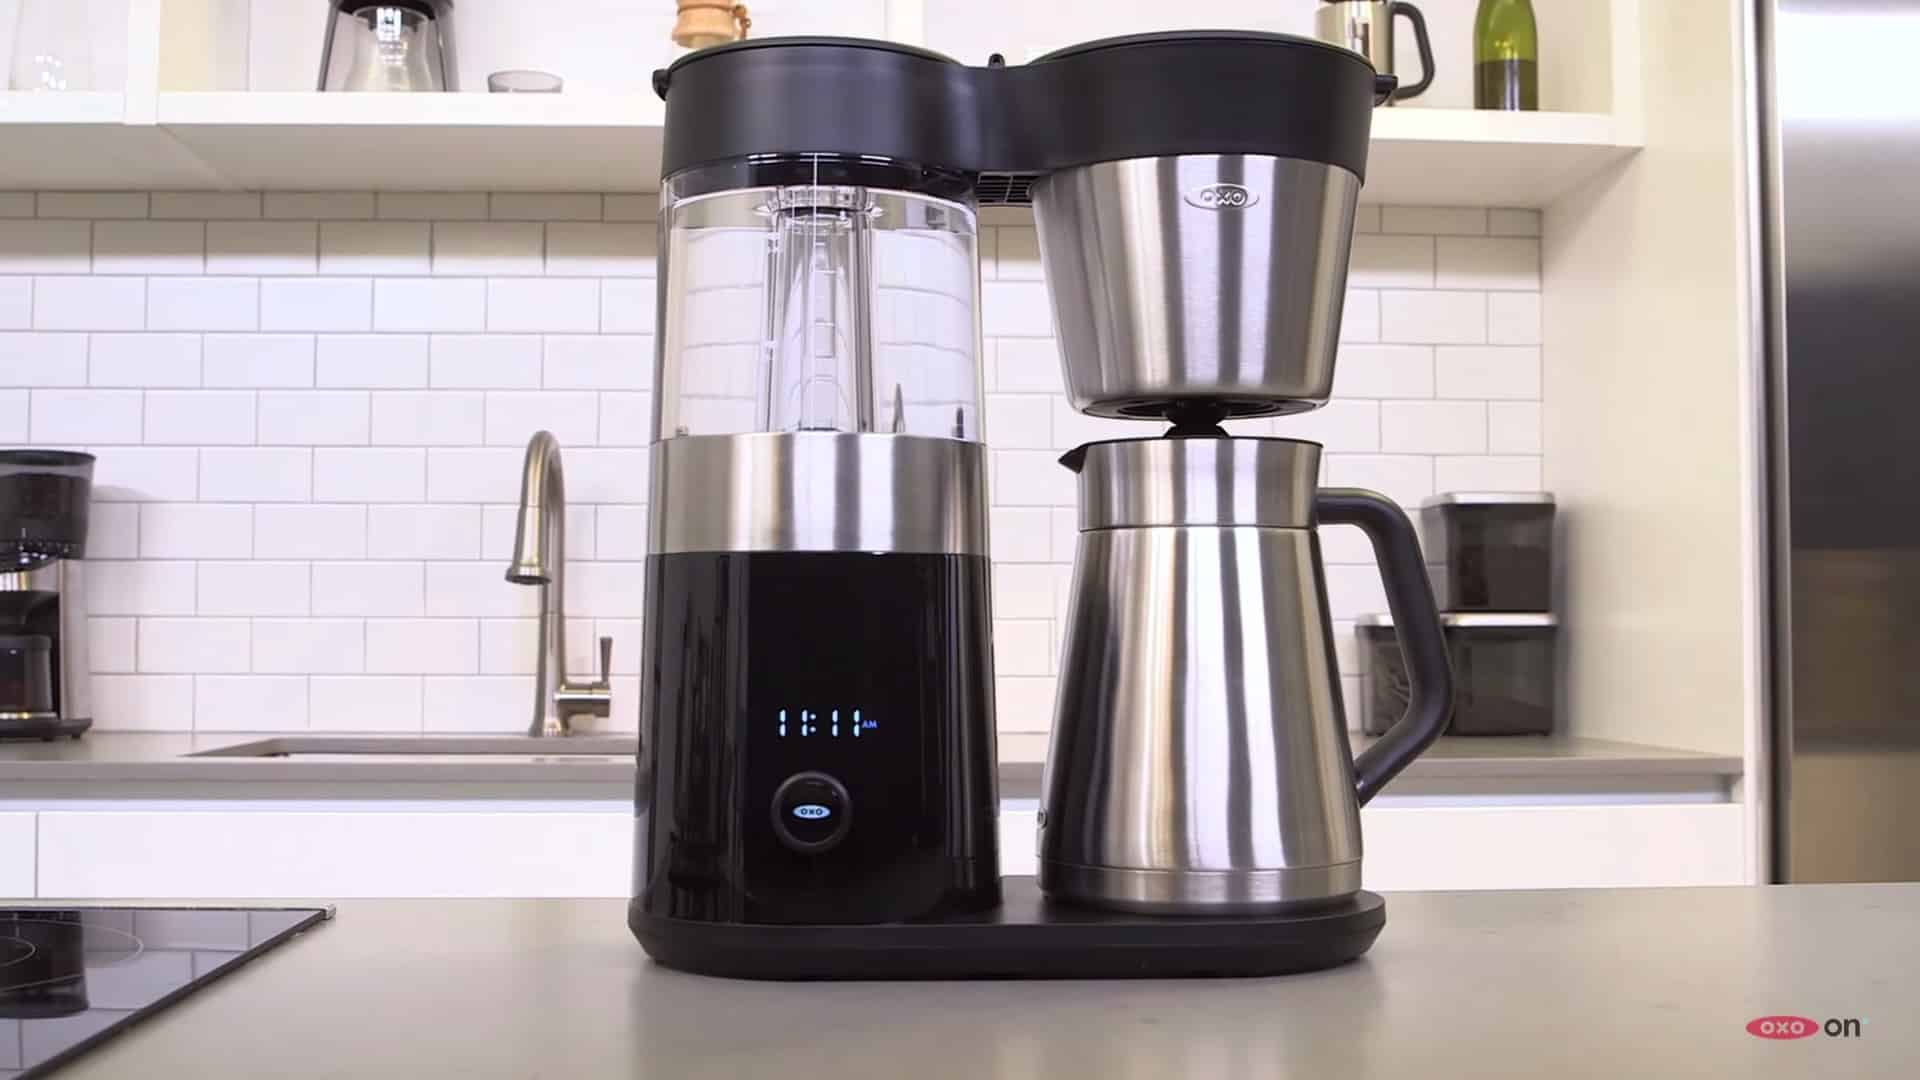 OXO On Barista Brain 9-Cup Coffee Maker Details